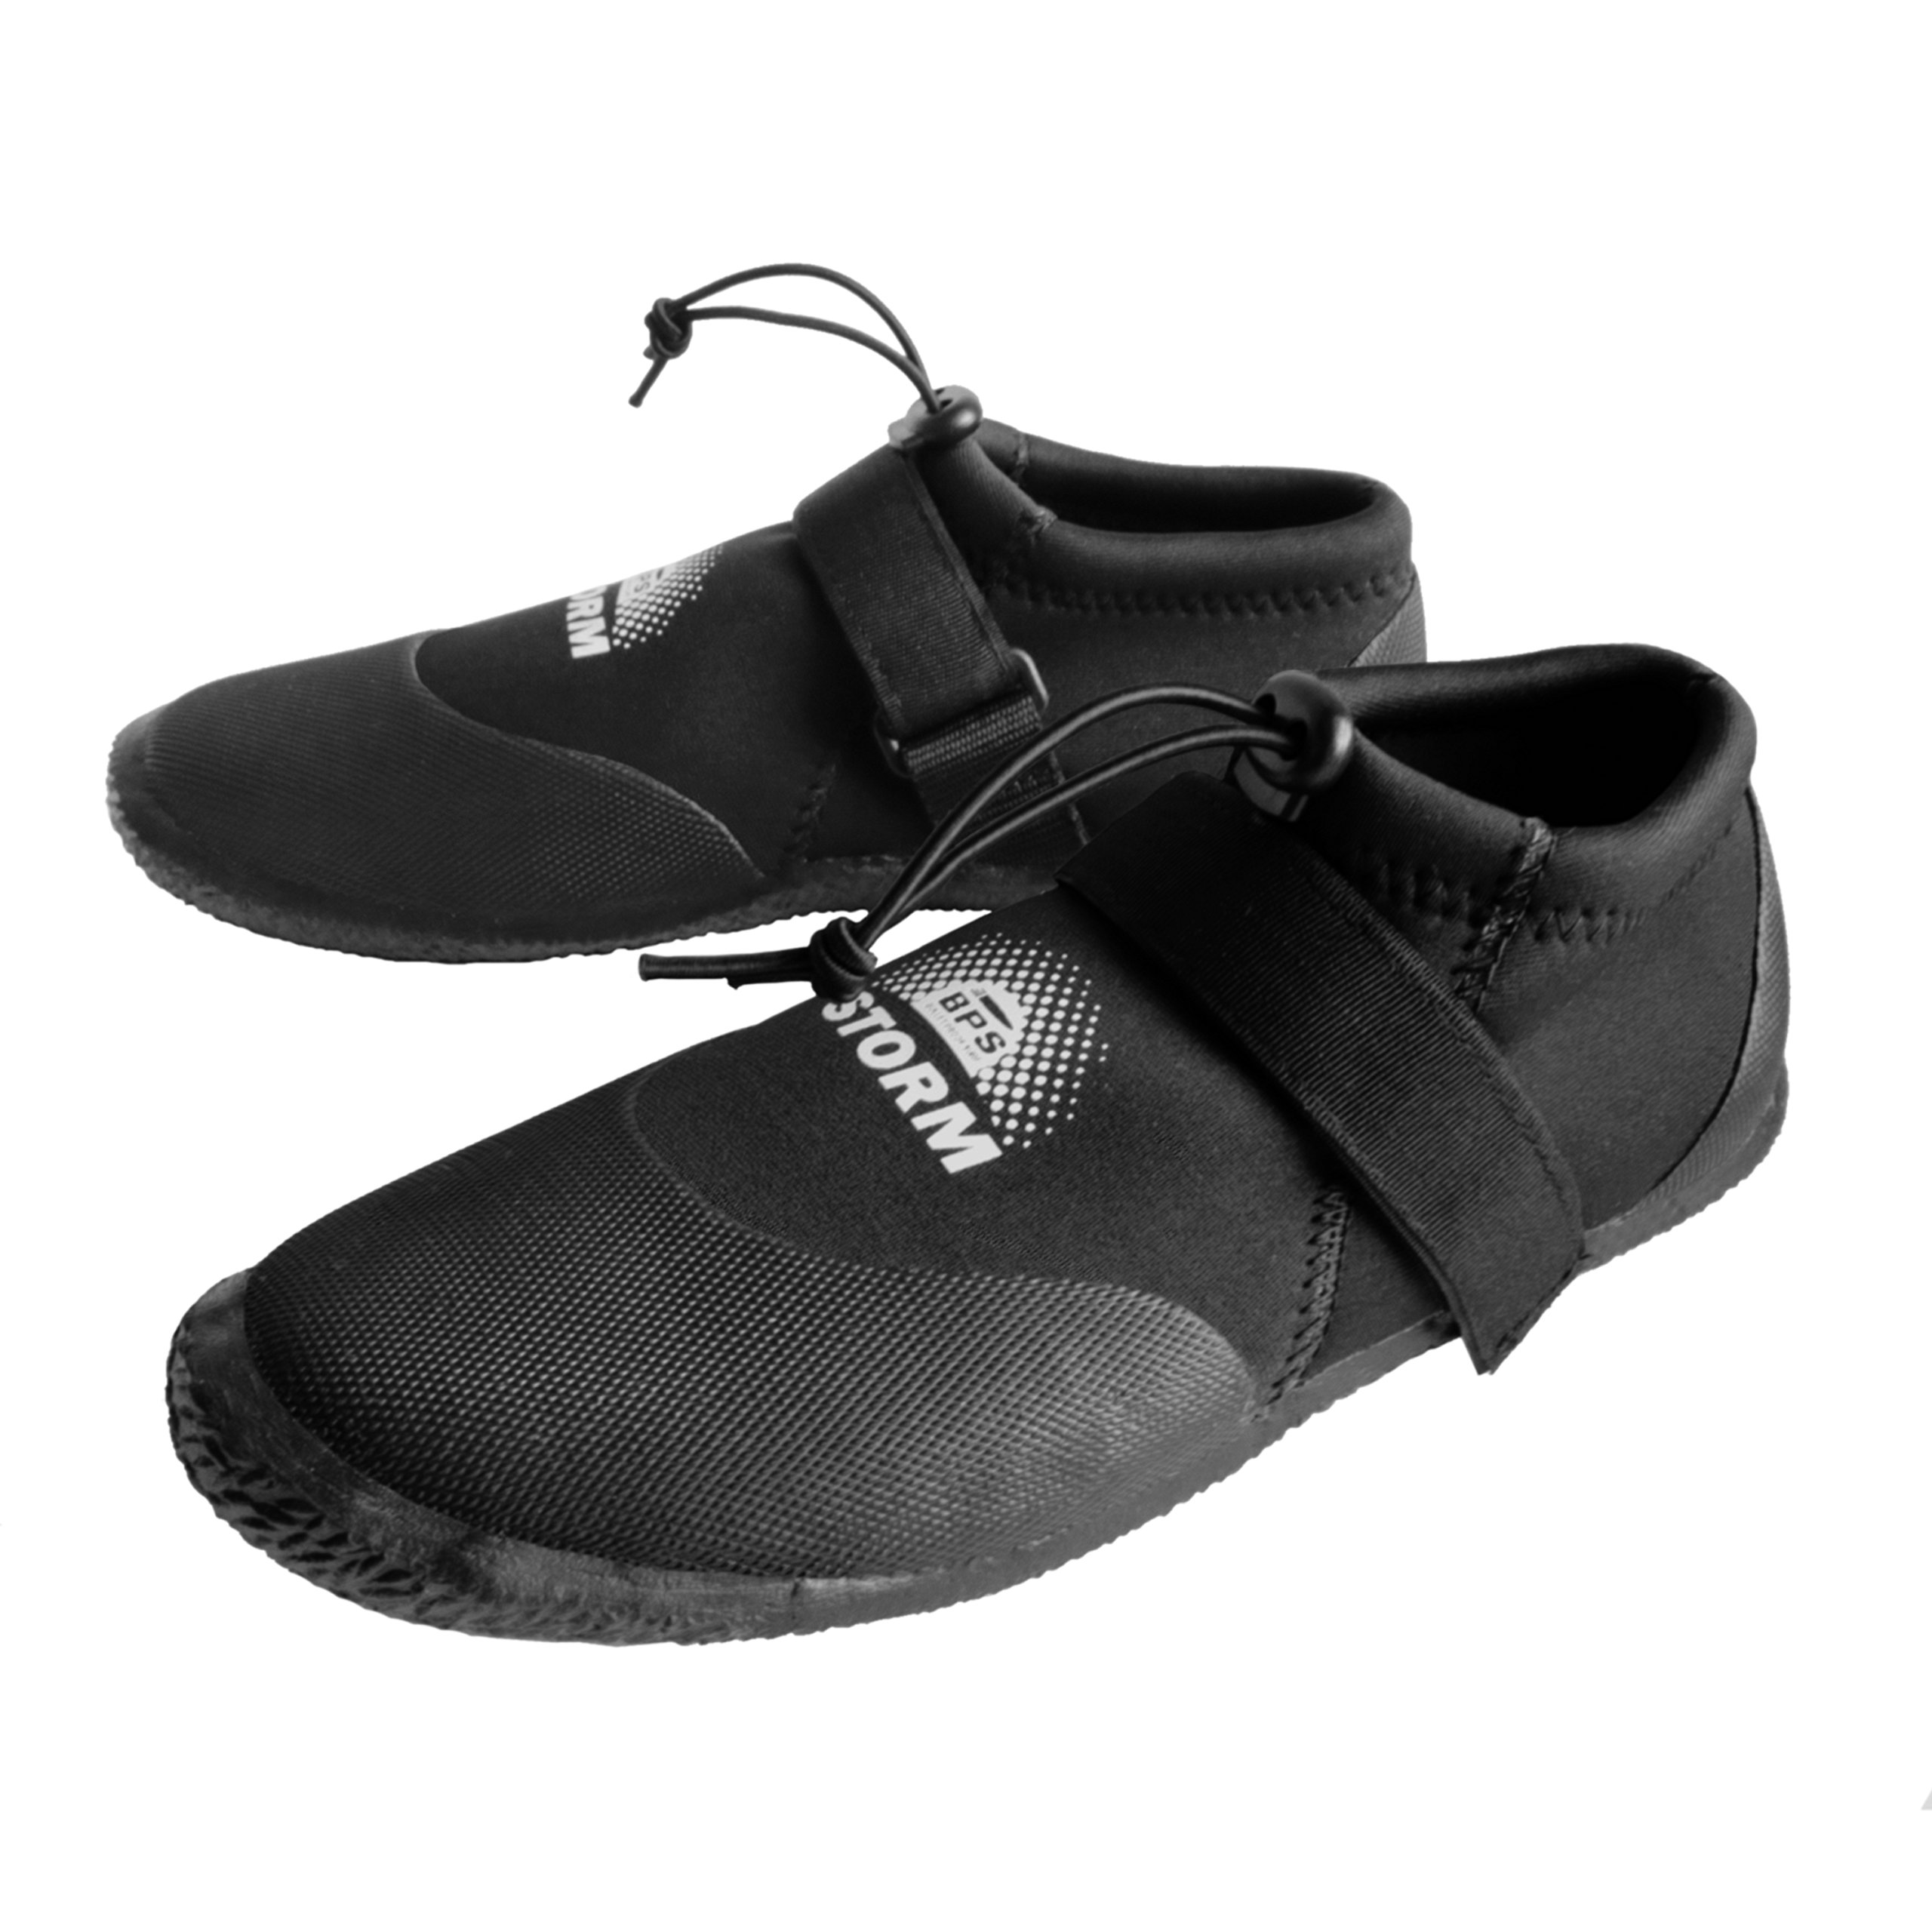 BPS Neoprene Watersports Dive Shoes - Size 8